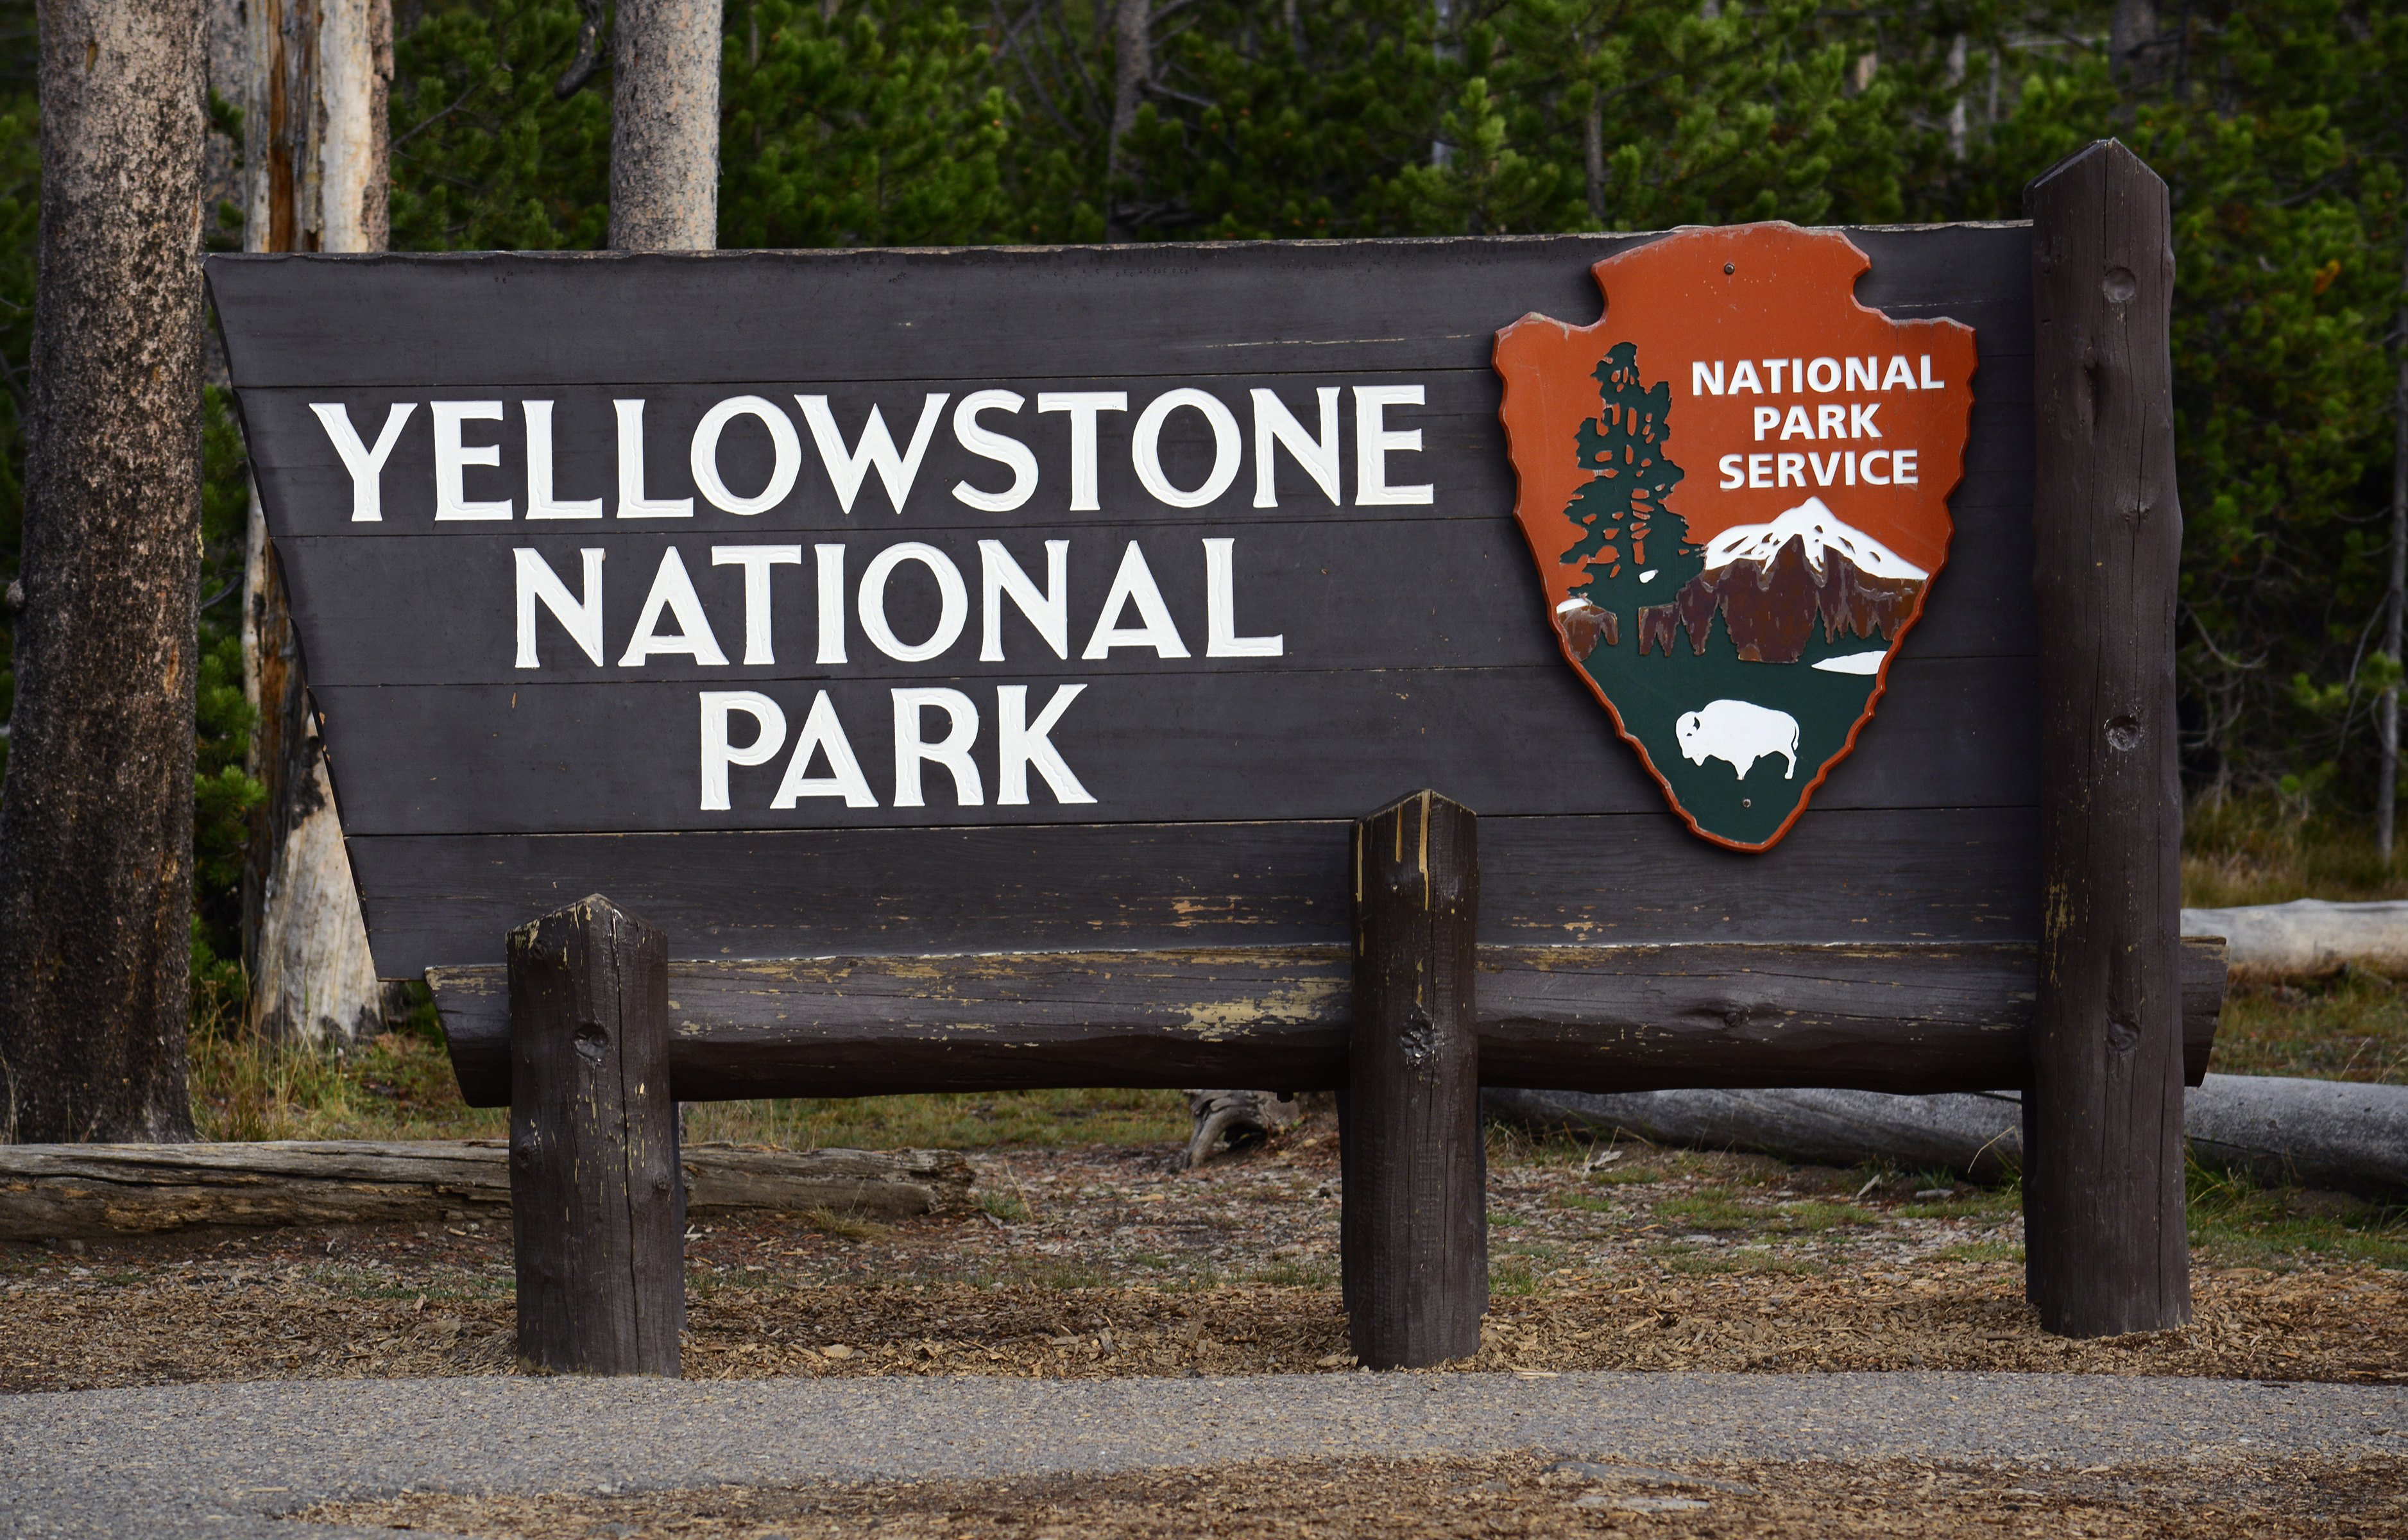 A National Park Service sign welcomes visitors to Yellowstone National Park in Wyoming.